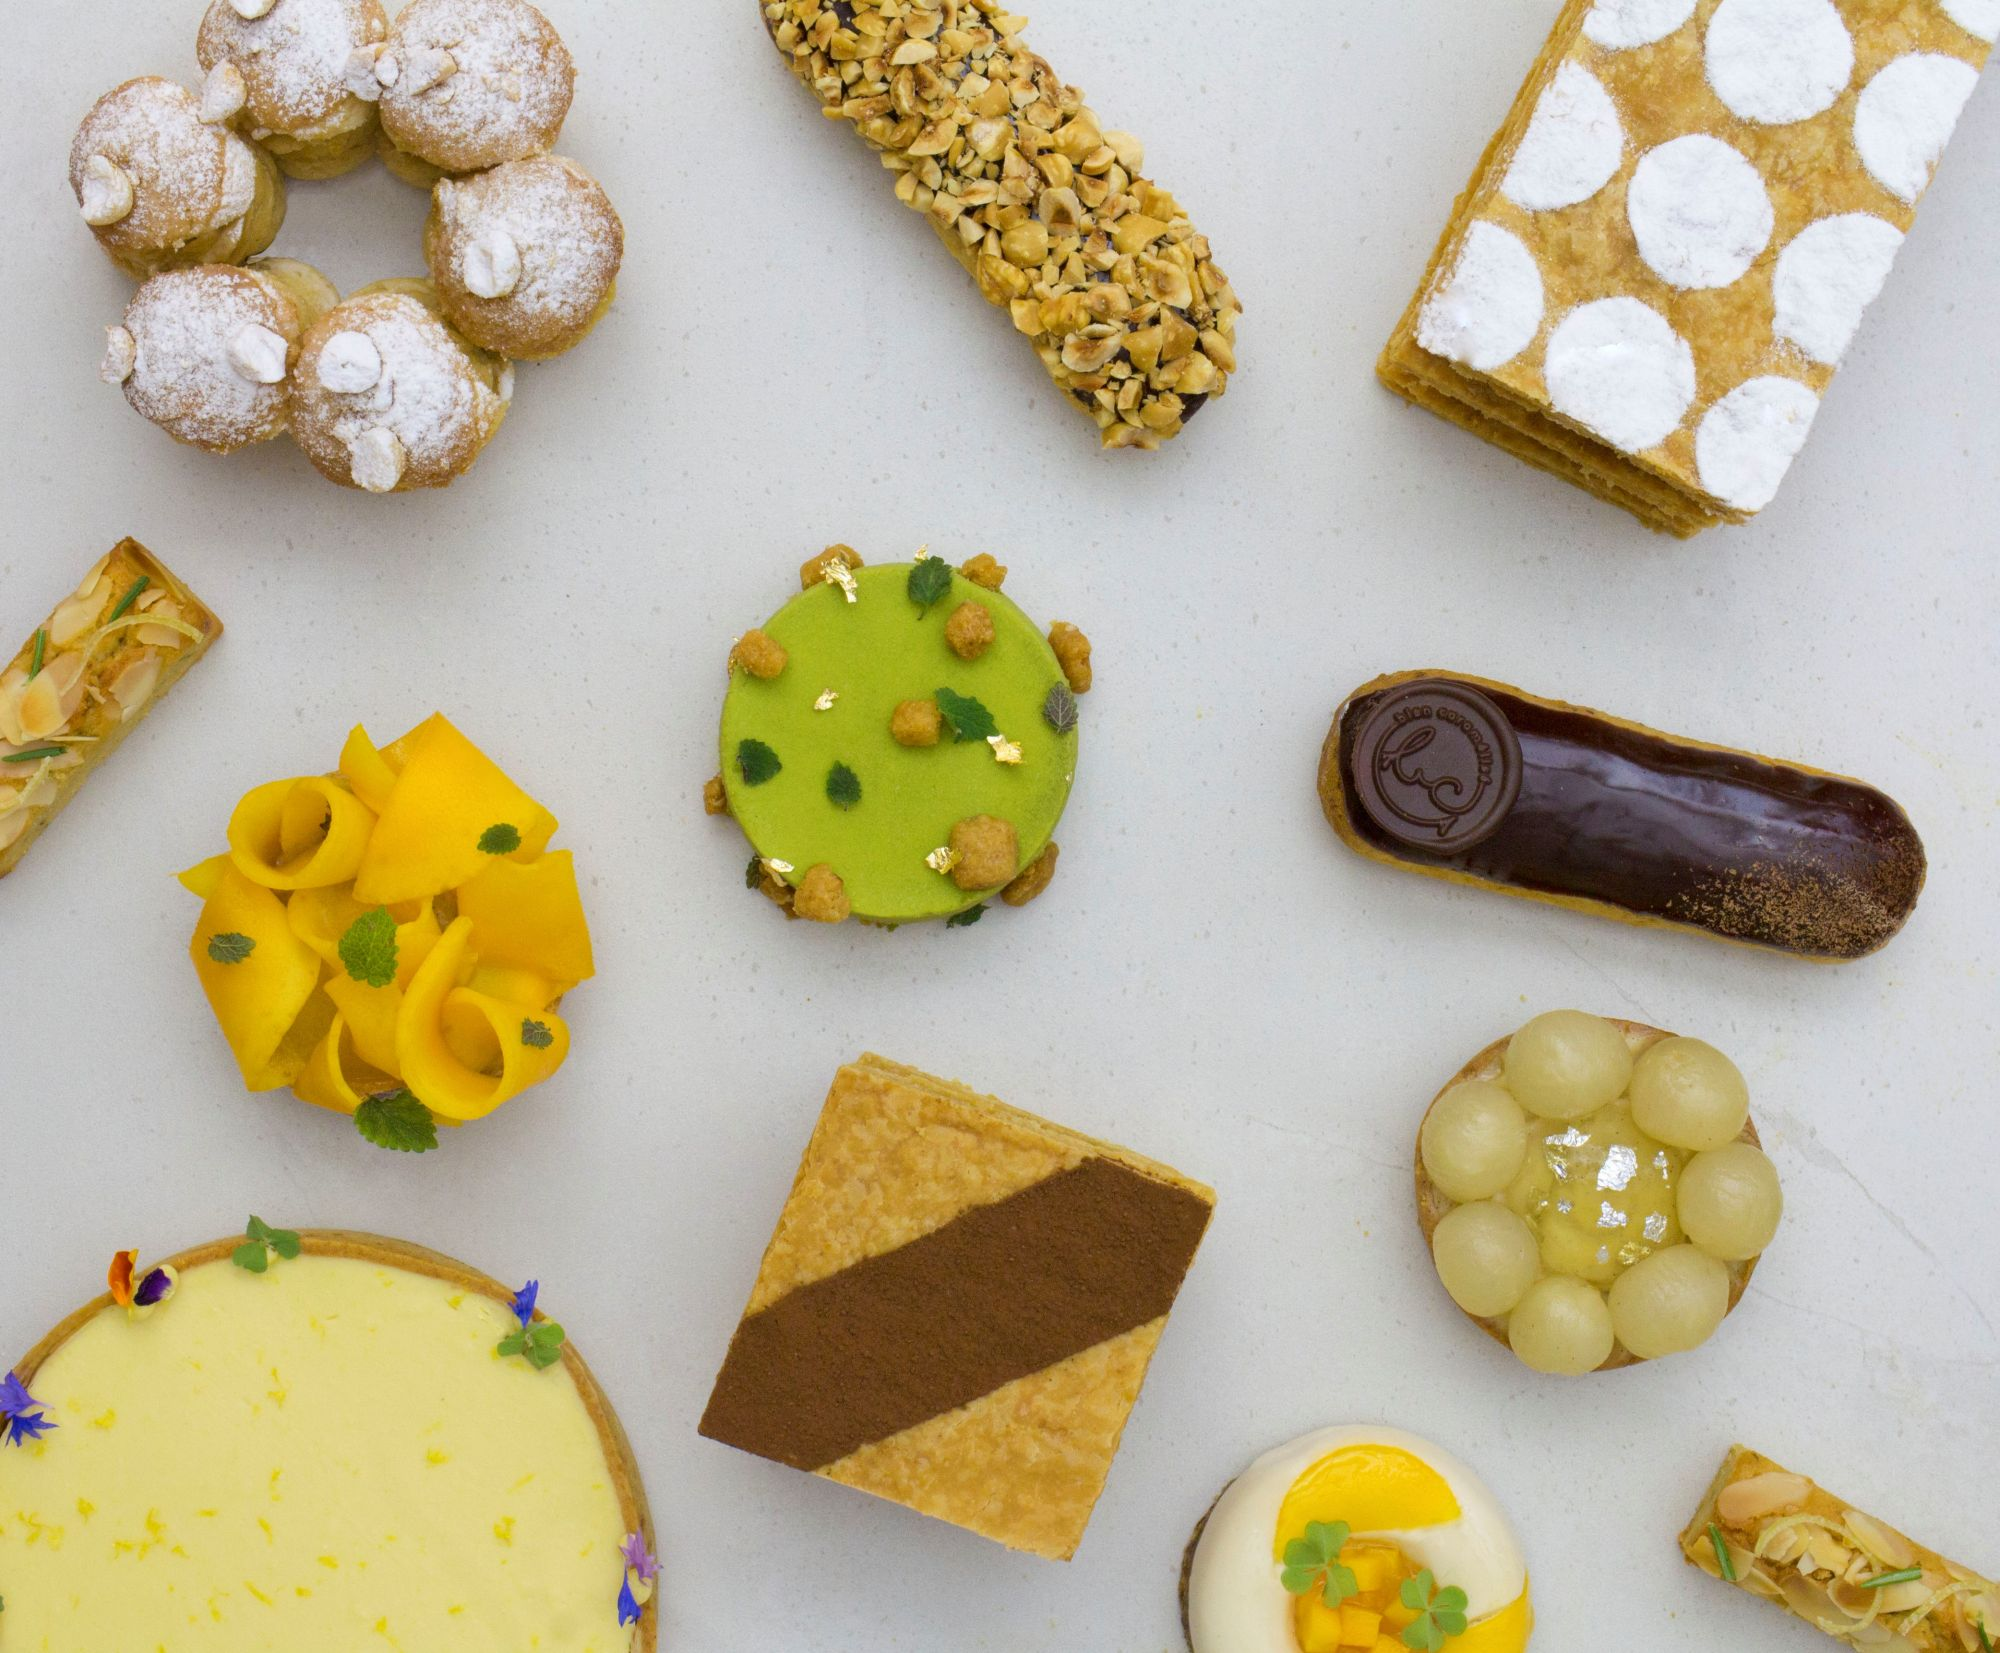 This Vegan Patisserie Has Reinvented Mille Feuille and Pâte à Choux